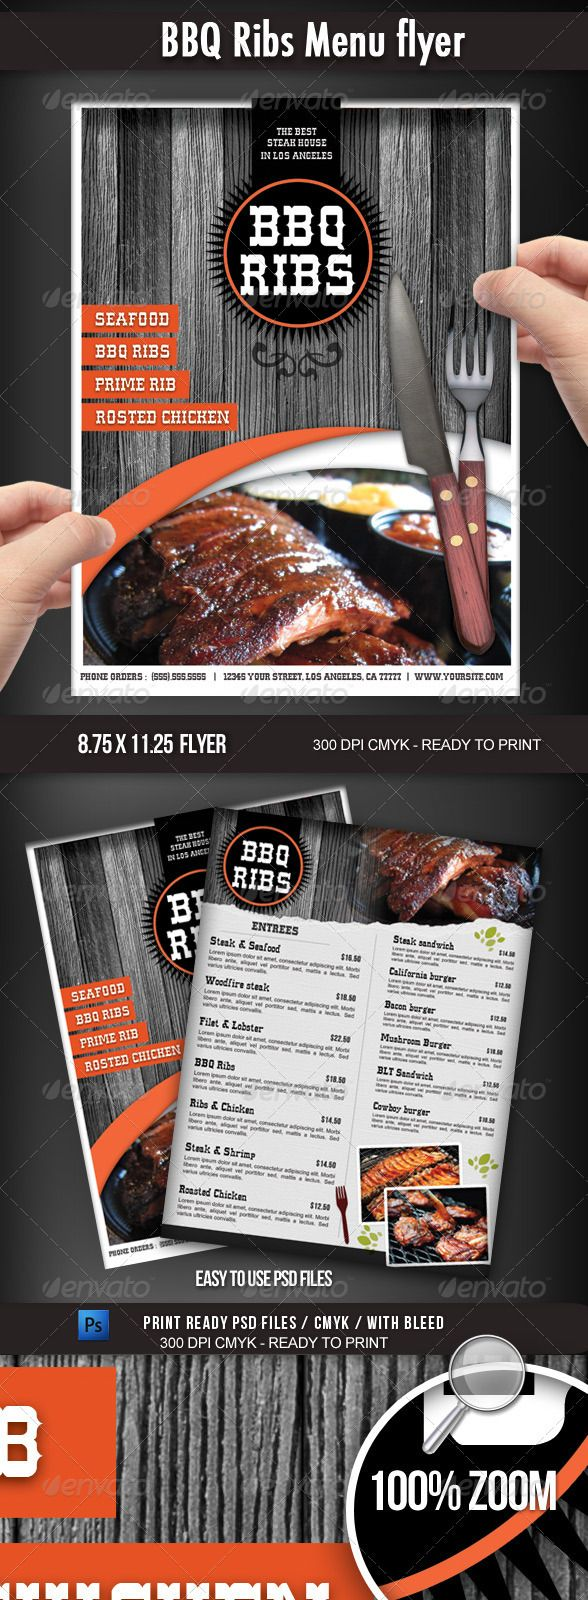 Best Bbq Restaurants Ideas On Pinterest Texas Barbecue Image - 6 kansas city bbq joints that rule the grill